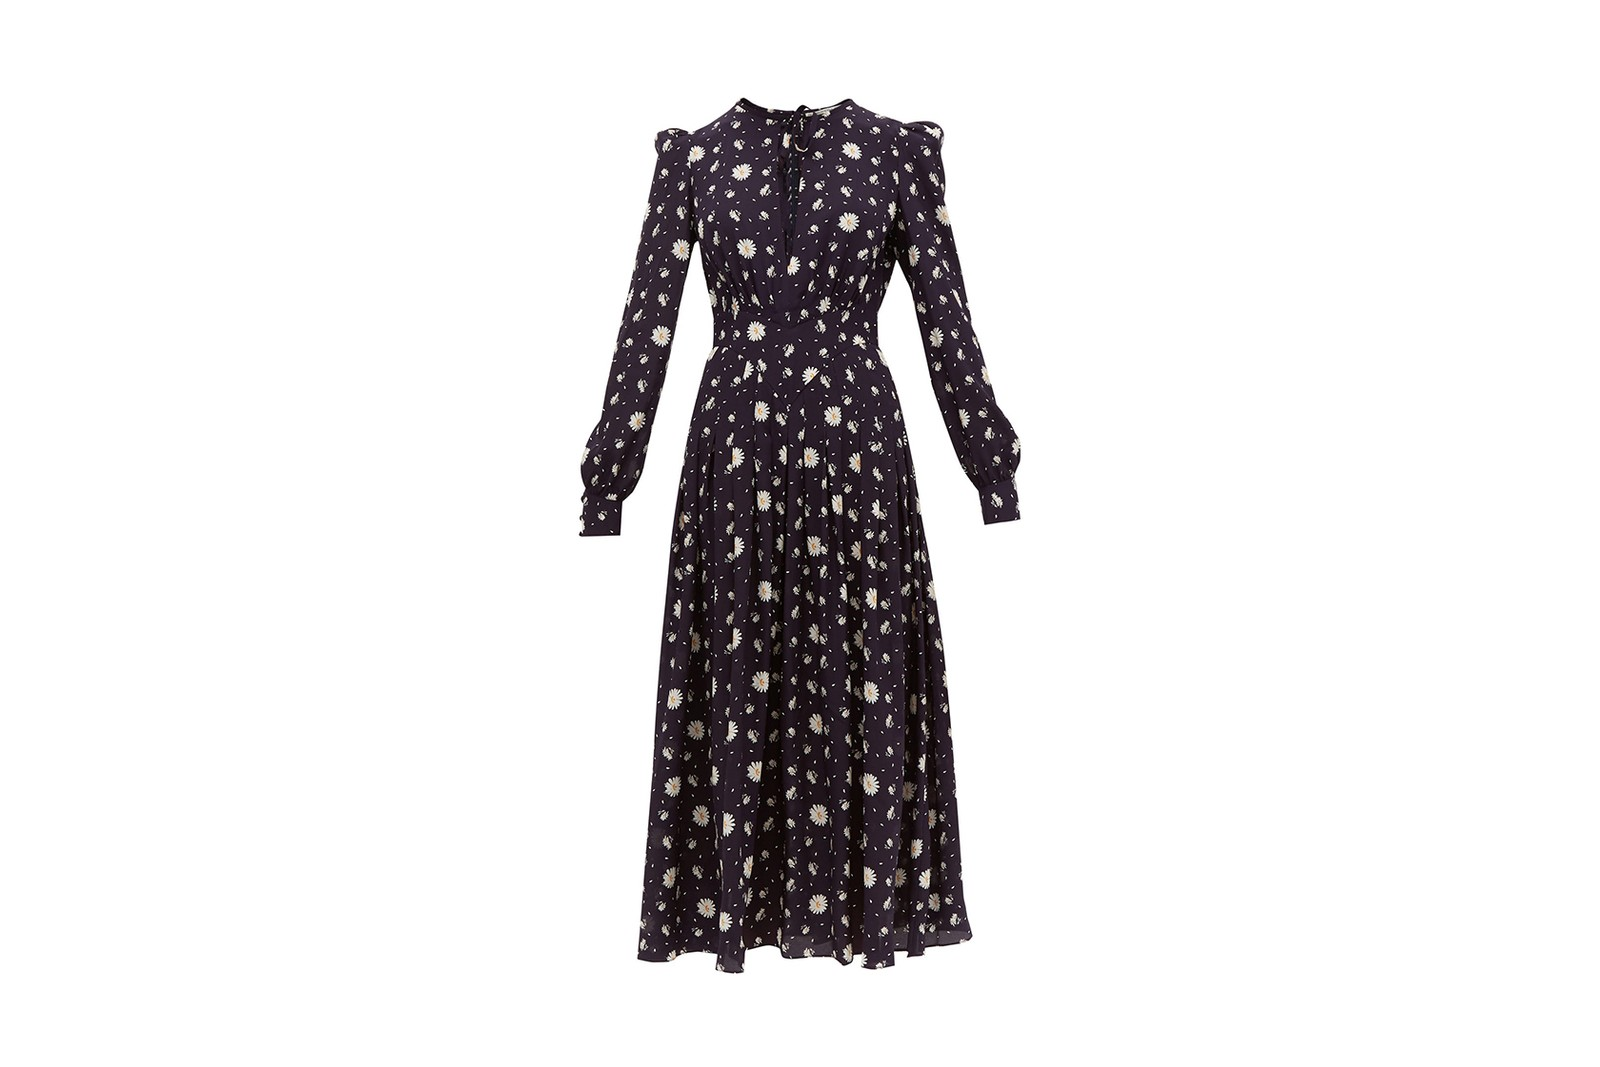 prairie dress dries van noten western ruffles high neck puffed sleeves floral victorian